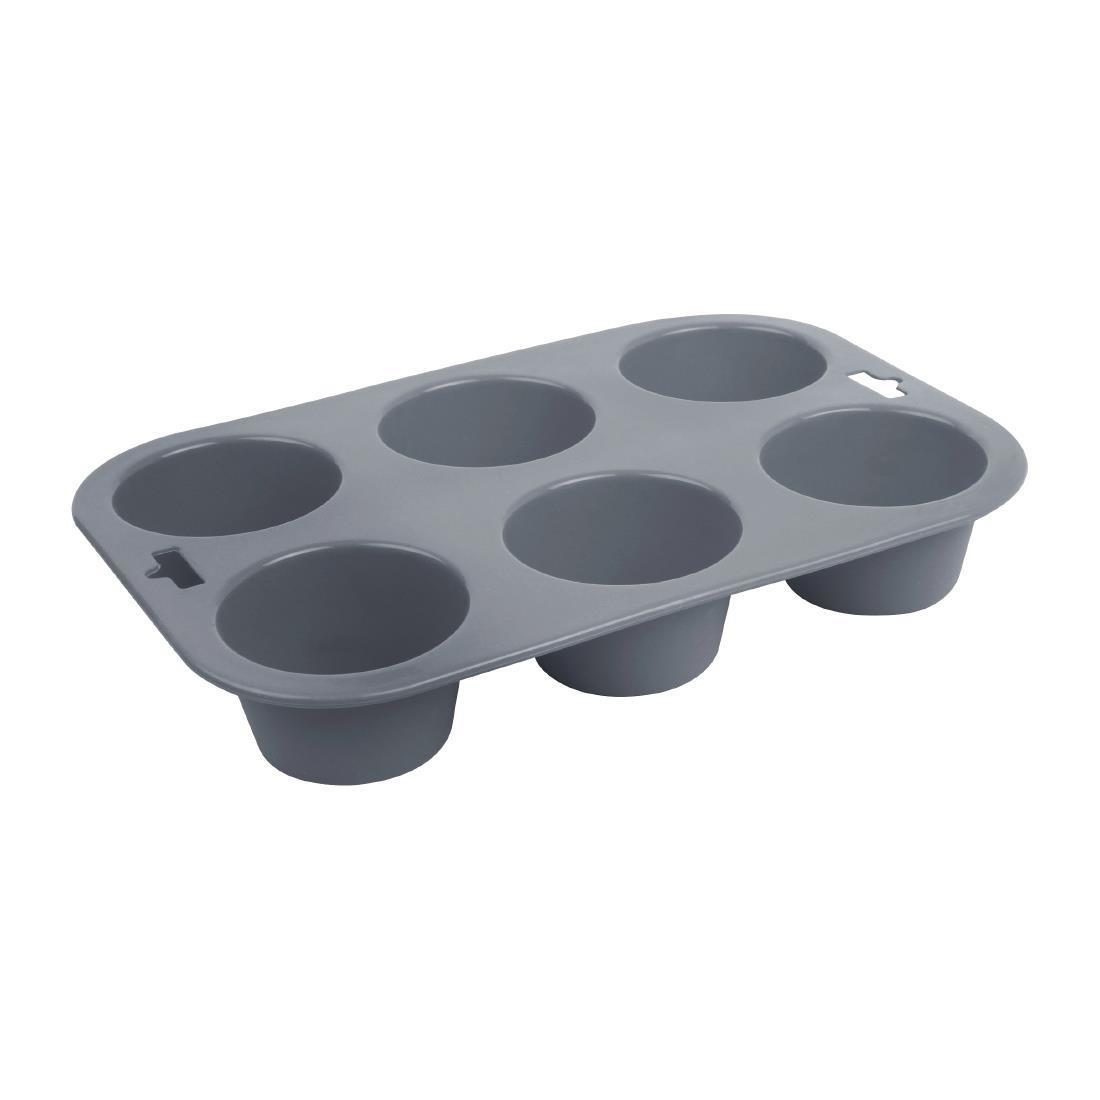 Vogue Flexible Silicone Muffin Pan 6 Cup - Each - DA520